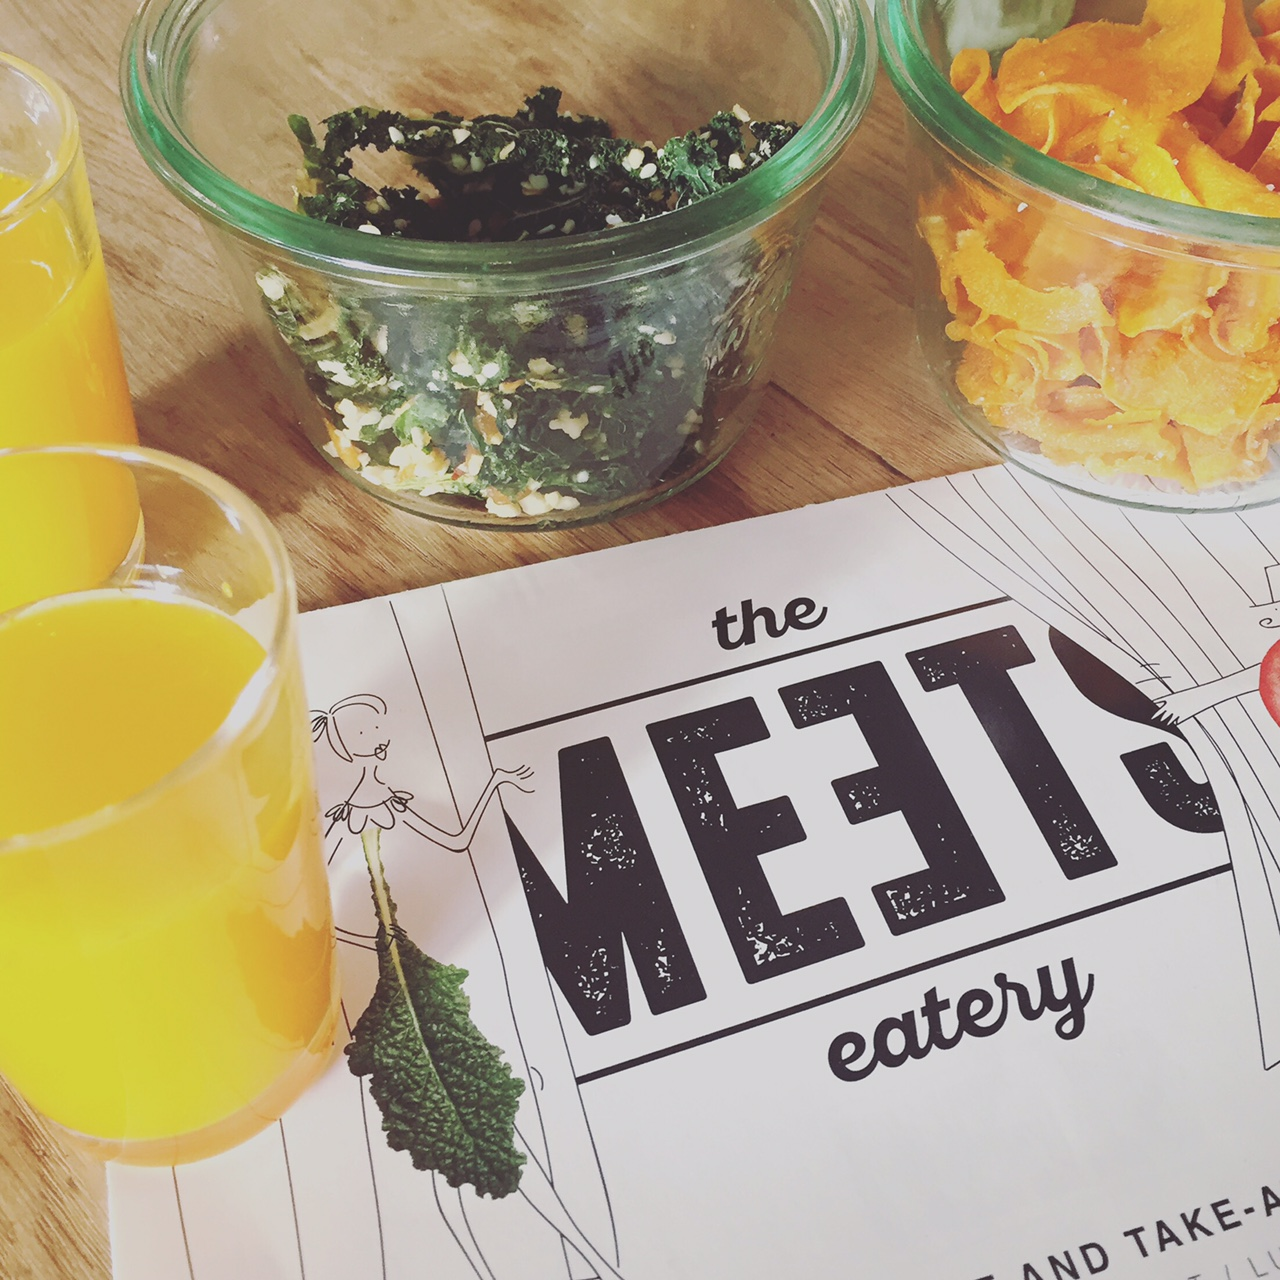 the meets eatery amsterdam